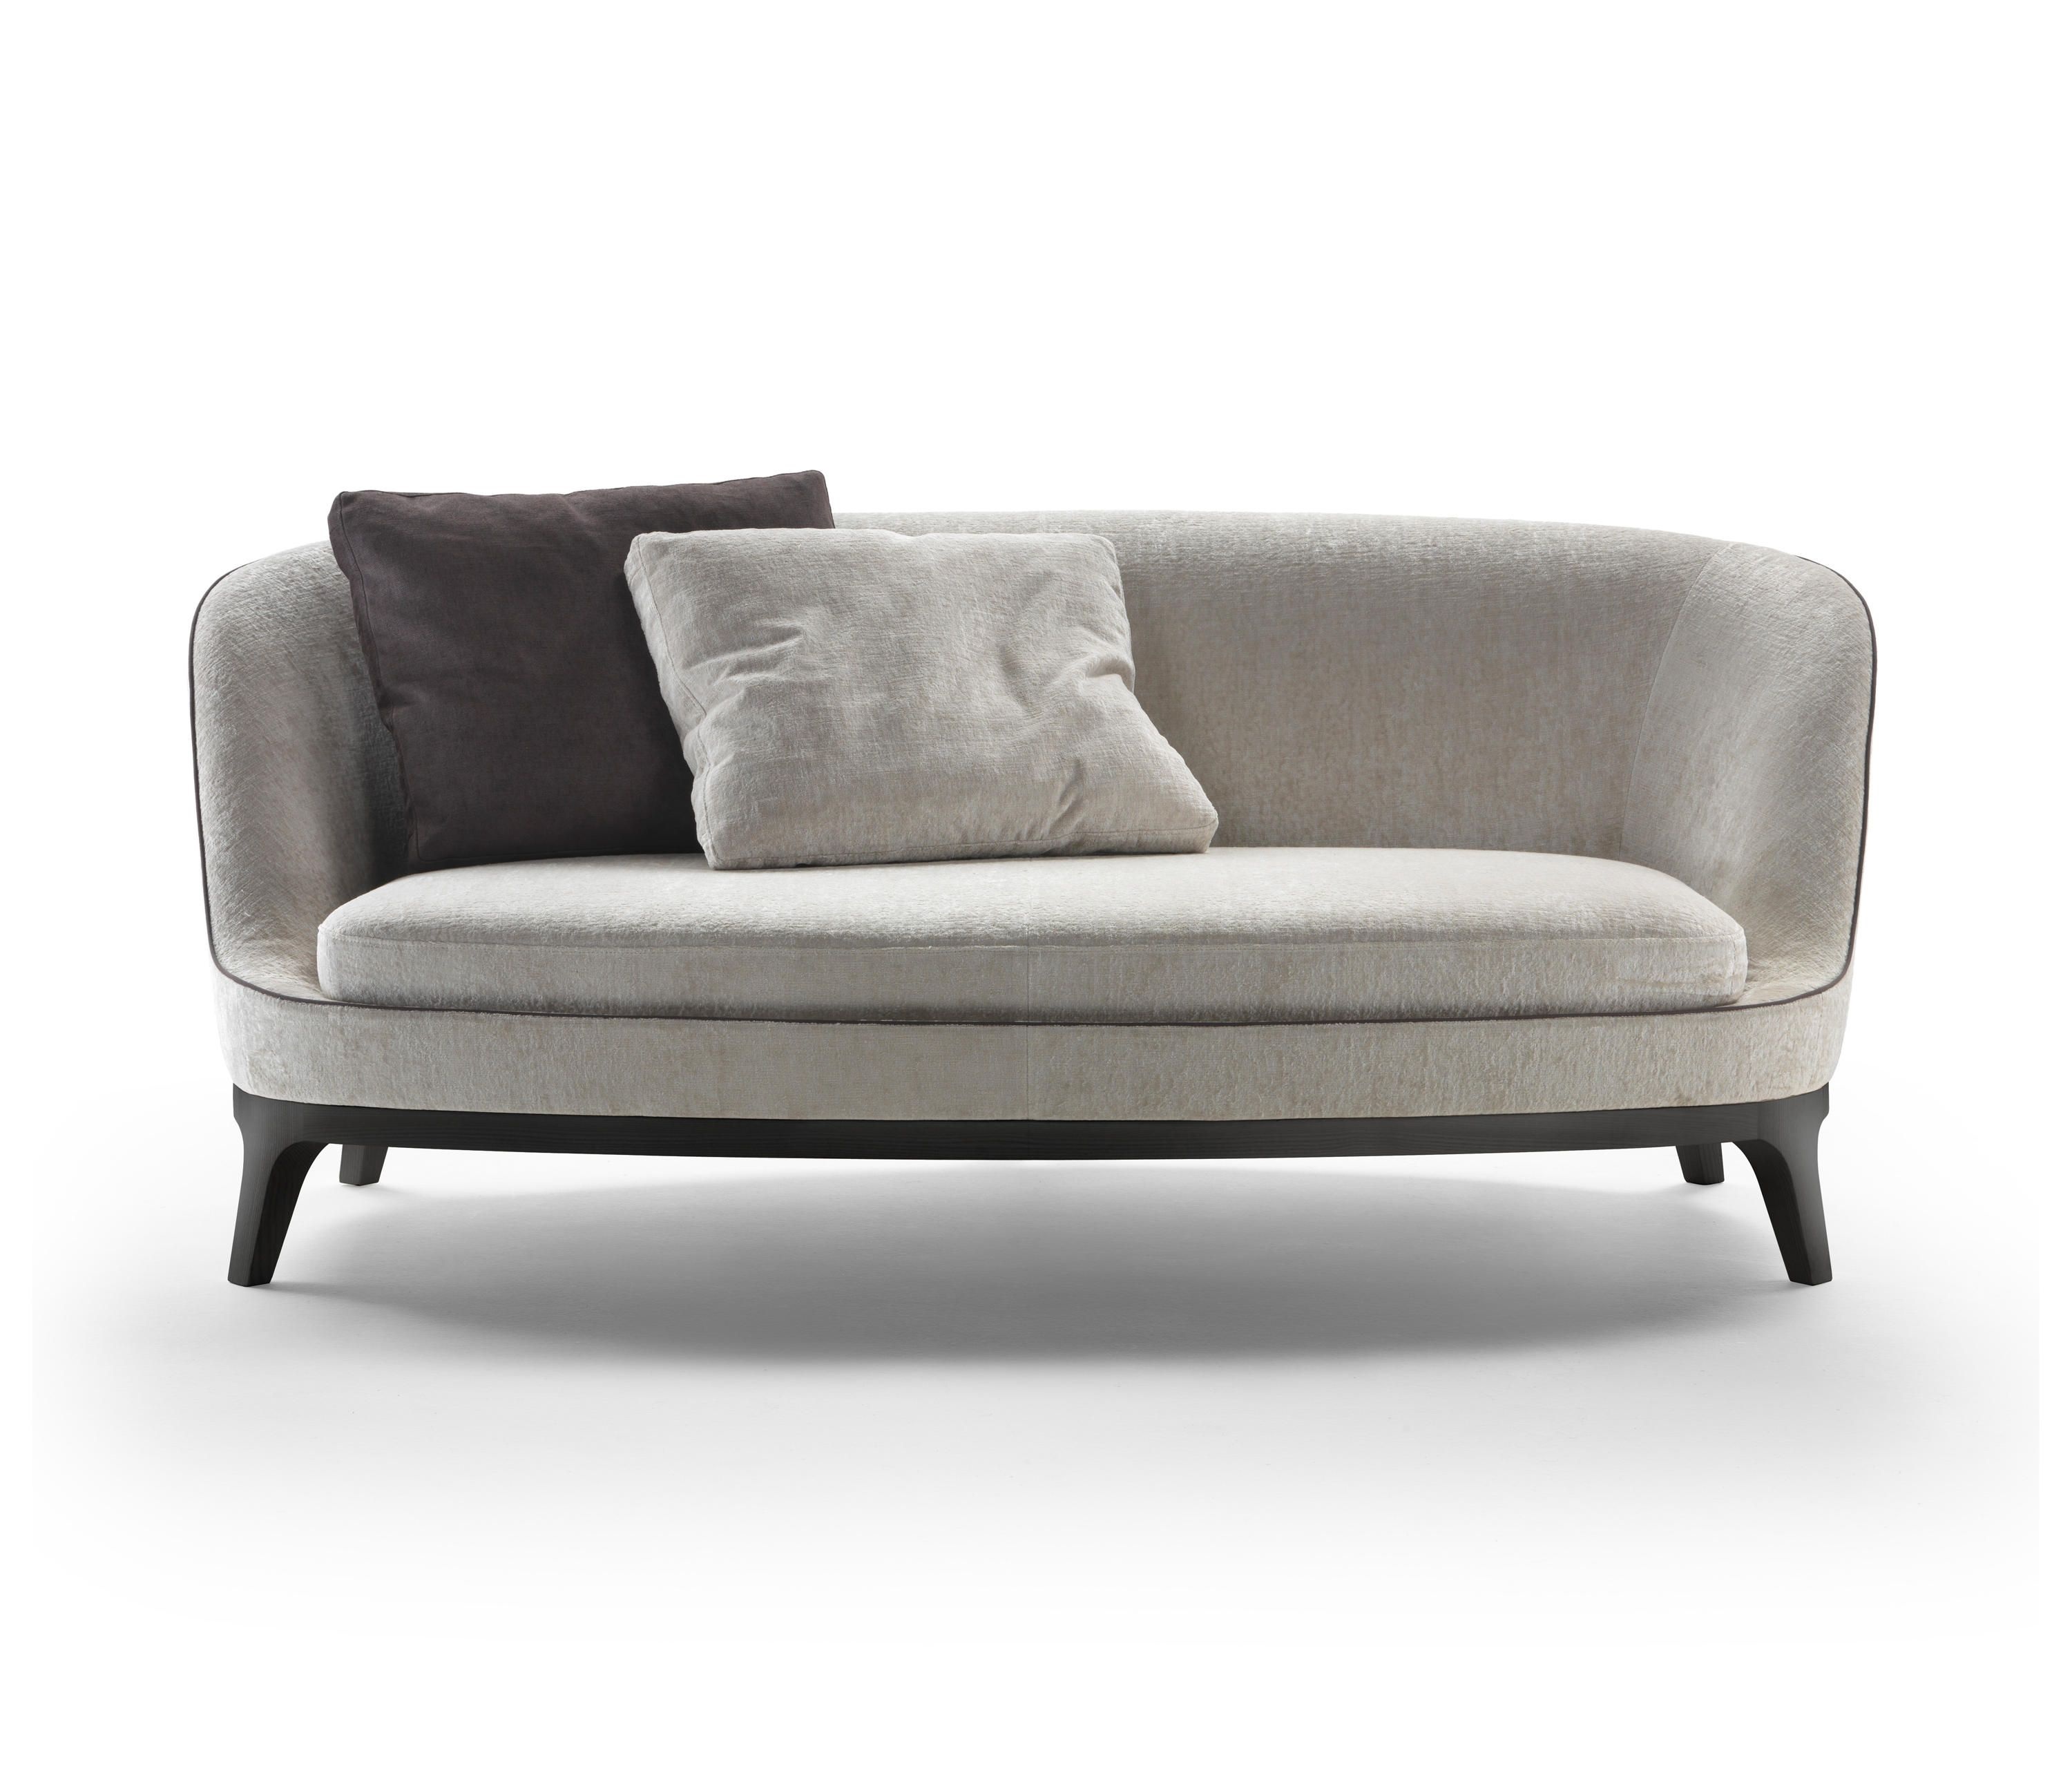 Elegance In Repose Flexform Mood Small Sofa Small Sofa Designs